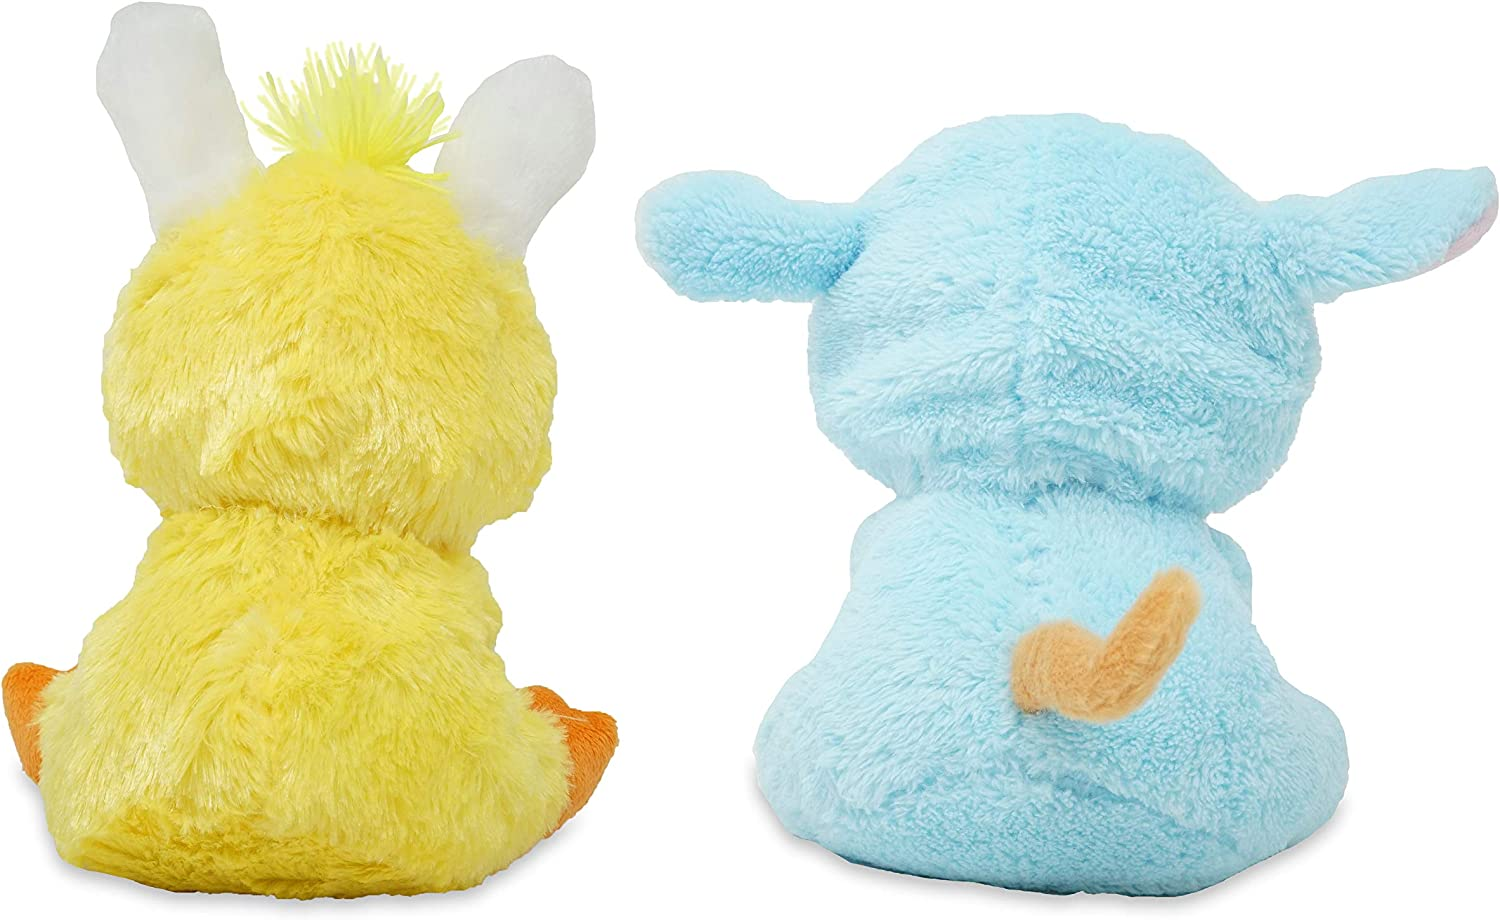 Set of 2 Bunny /& Kitty Dressed in Easter Animal Costumes with Easter Eggs Play 4 Fun Messages When Squeezed Hide /& Peepers 9 Inches Cuddle Barn